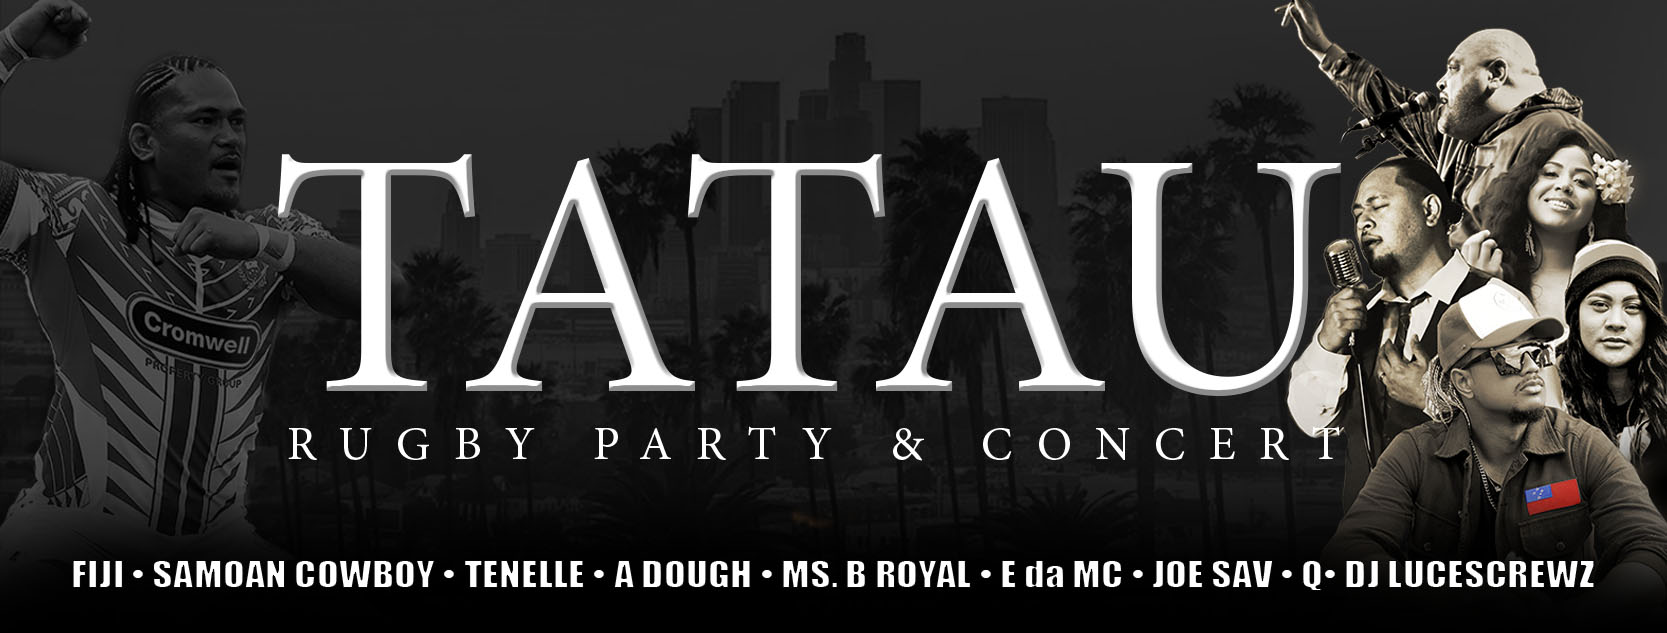 Tatau Rugby Party & Concert